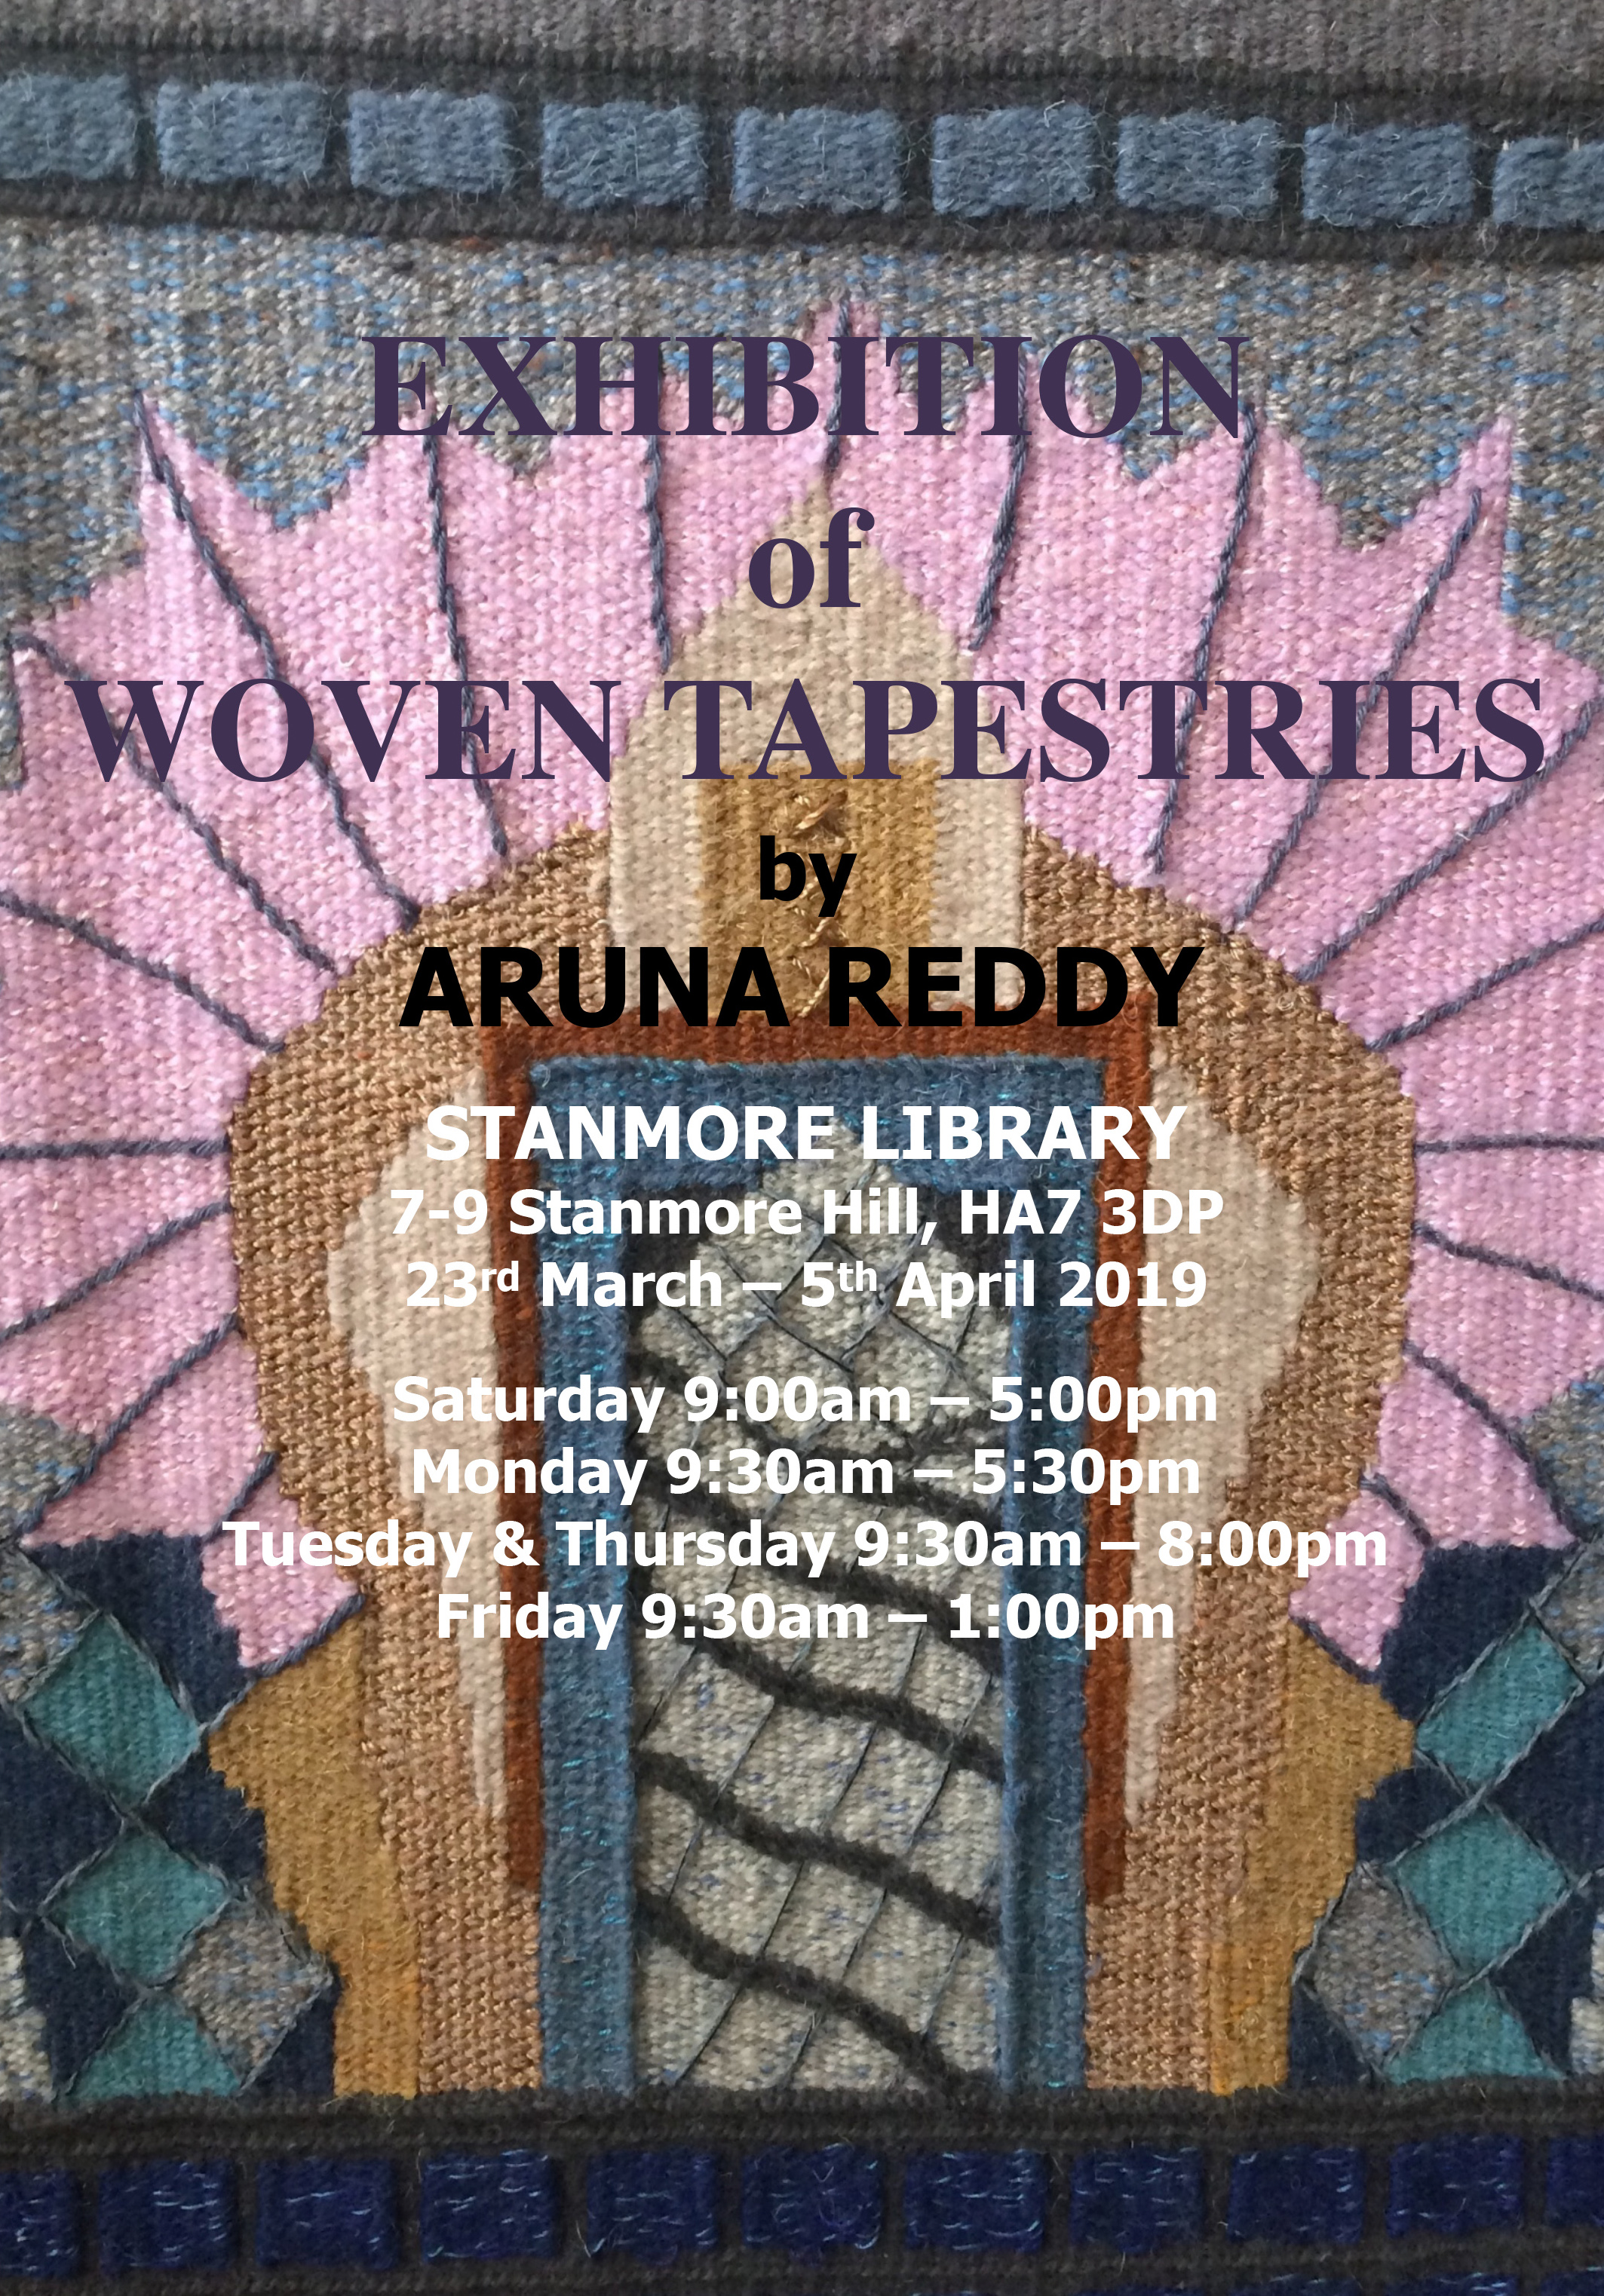 Stanmore_Library_Poster_2019.jpg